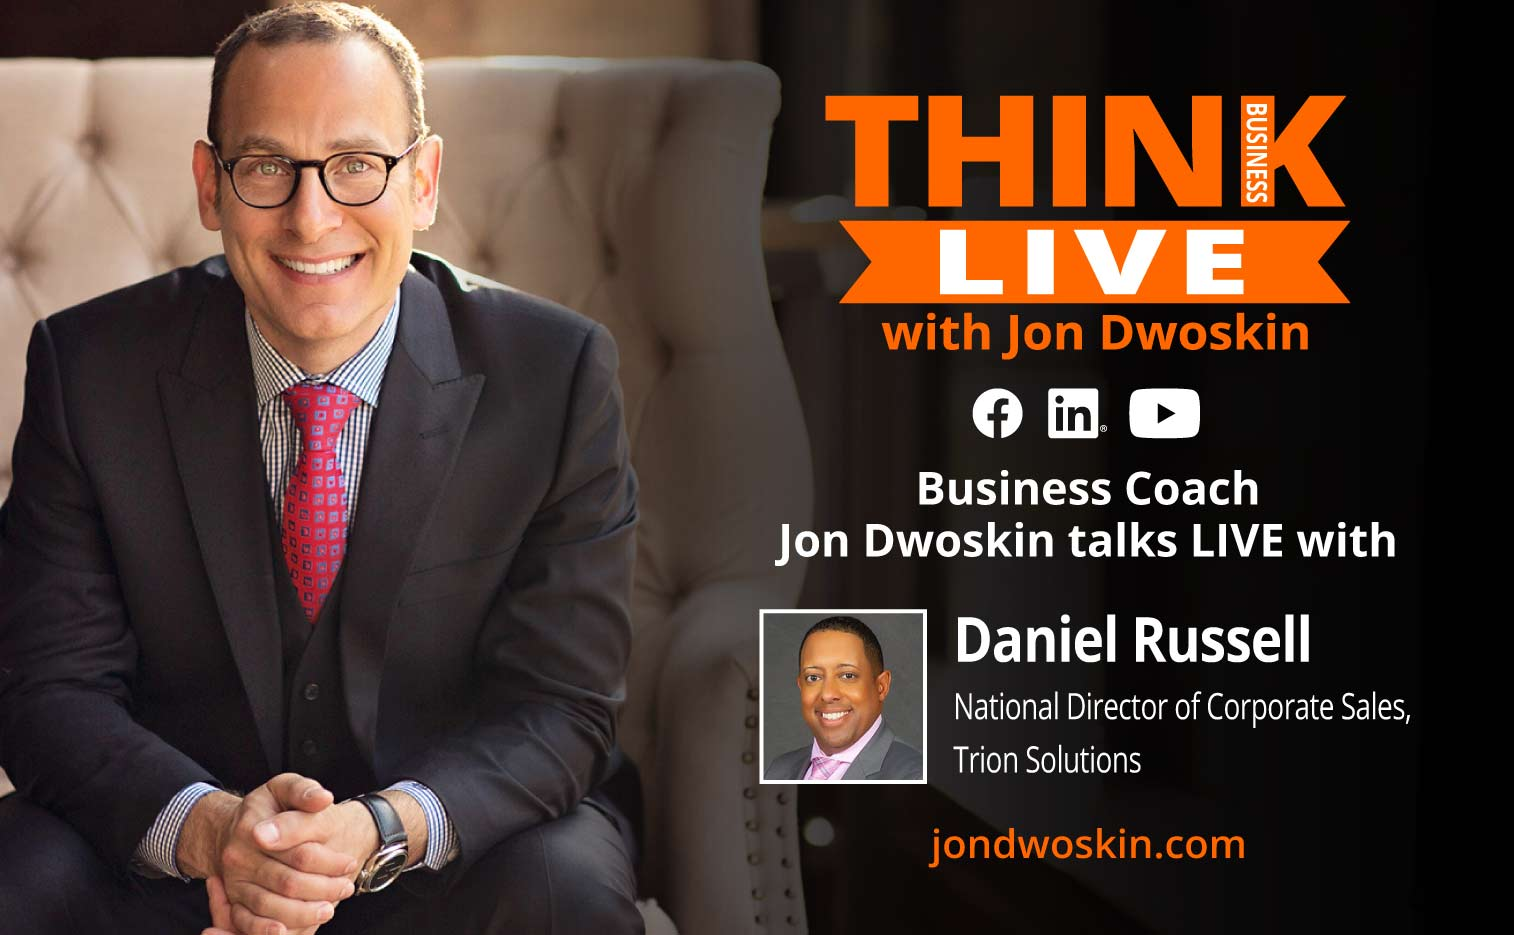 Jon Dwoskin Talks LIVE with Daniel Russell, National Director of Corporate Sales, Trion Solutions